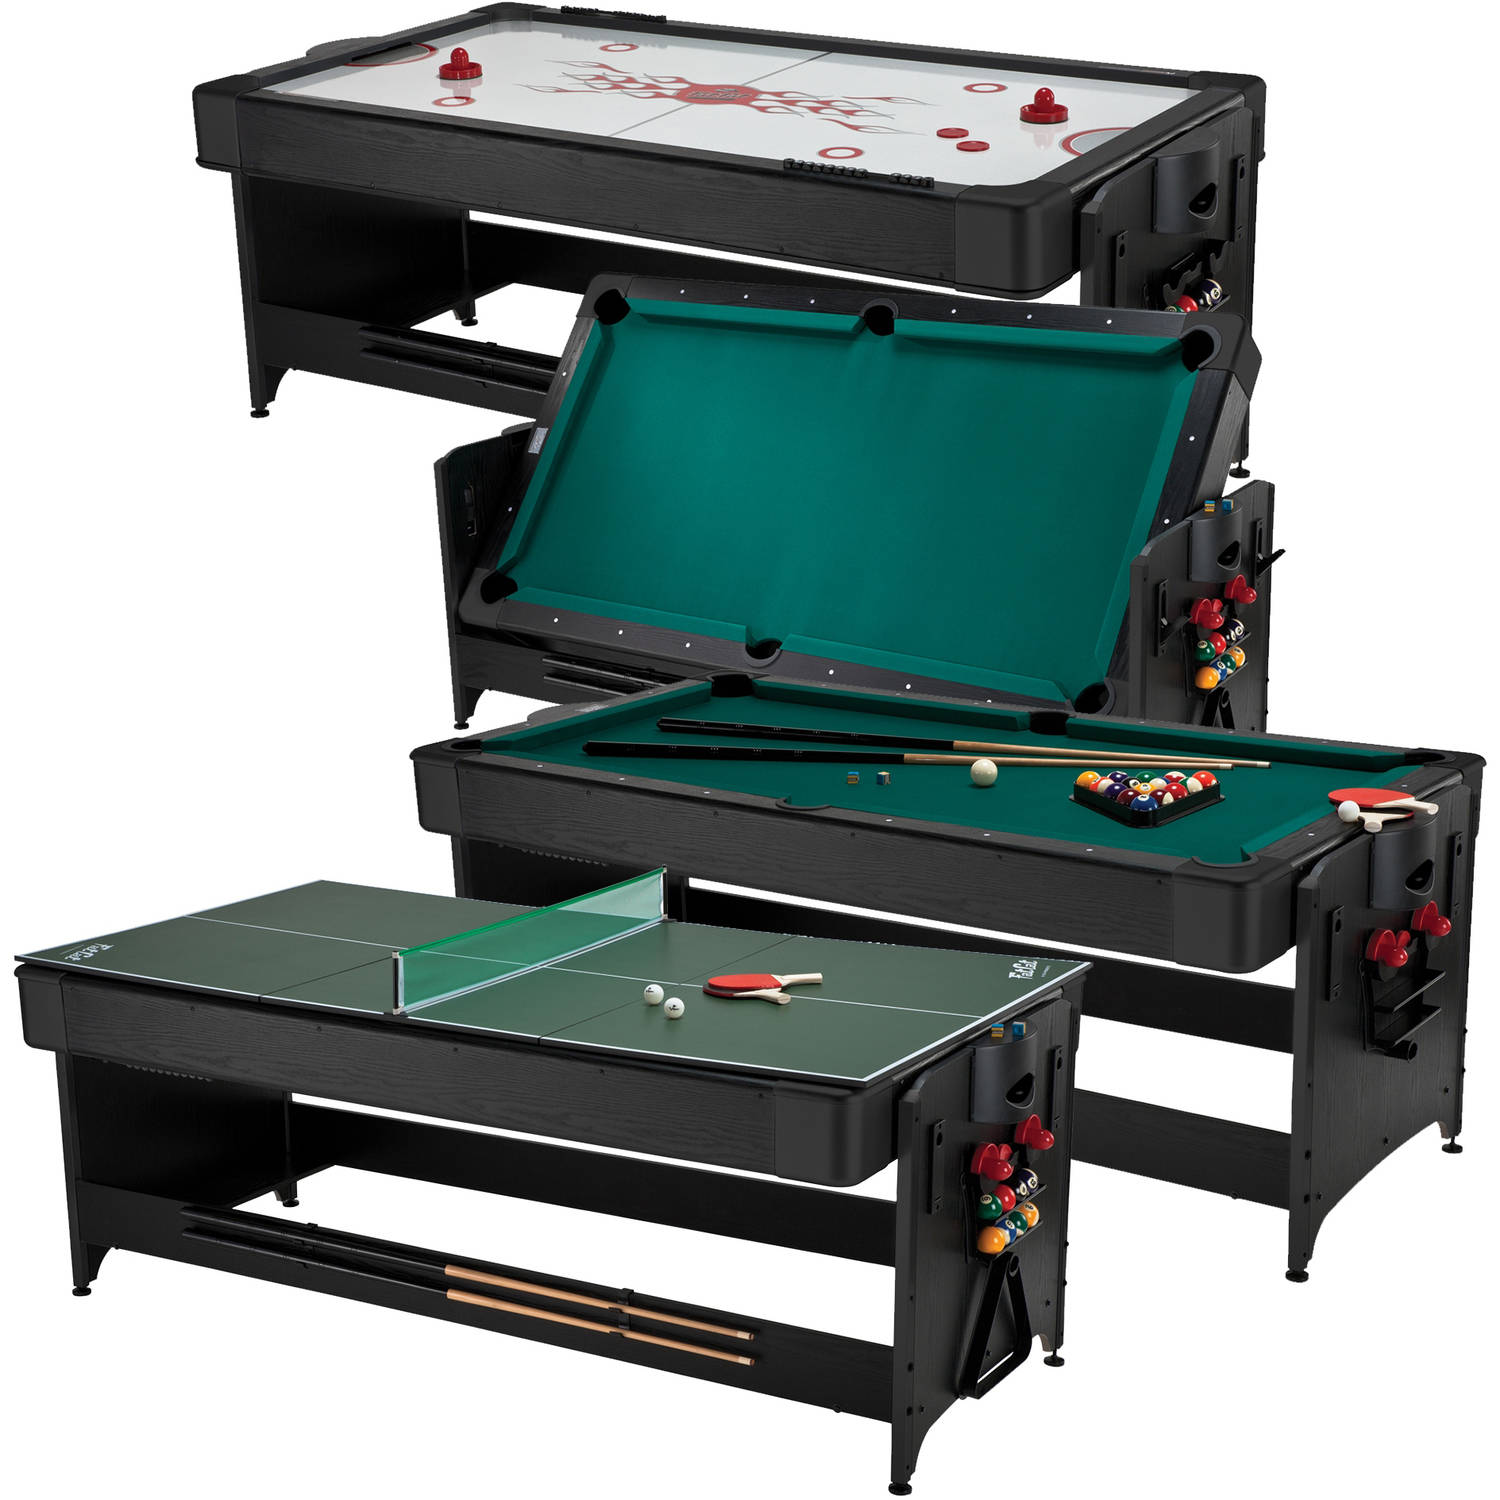 Fat Cat Pockey 7' 3-in-1 Game Table